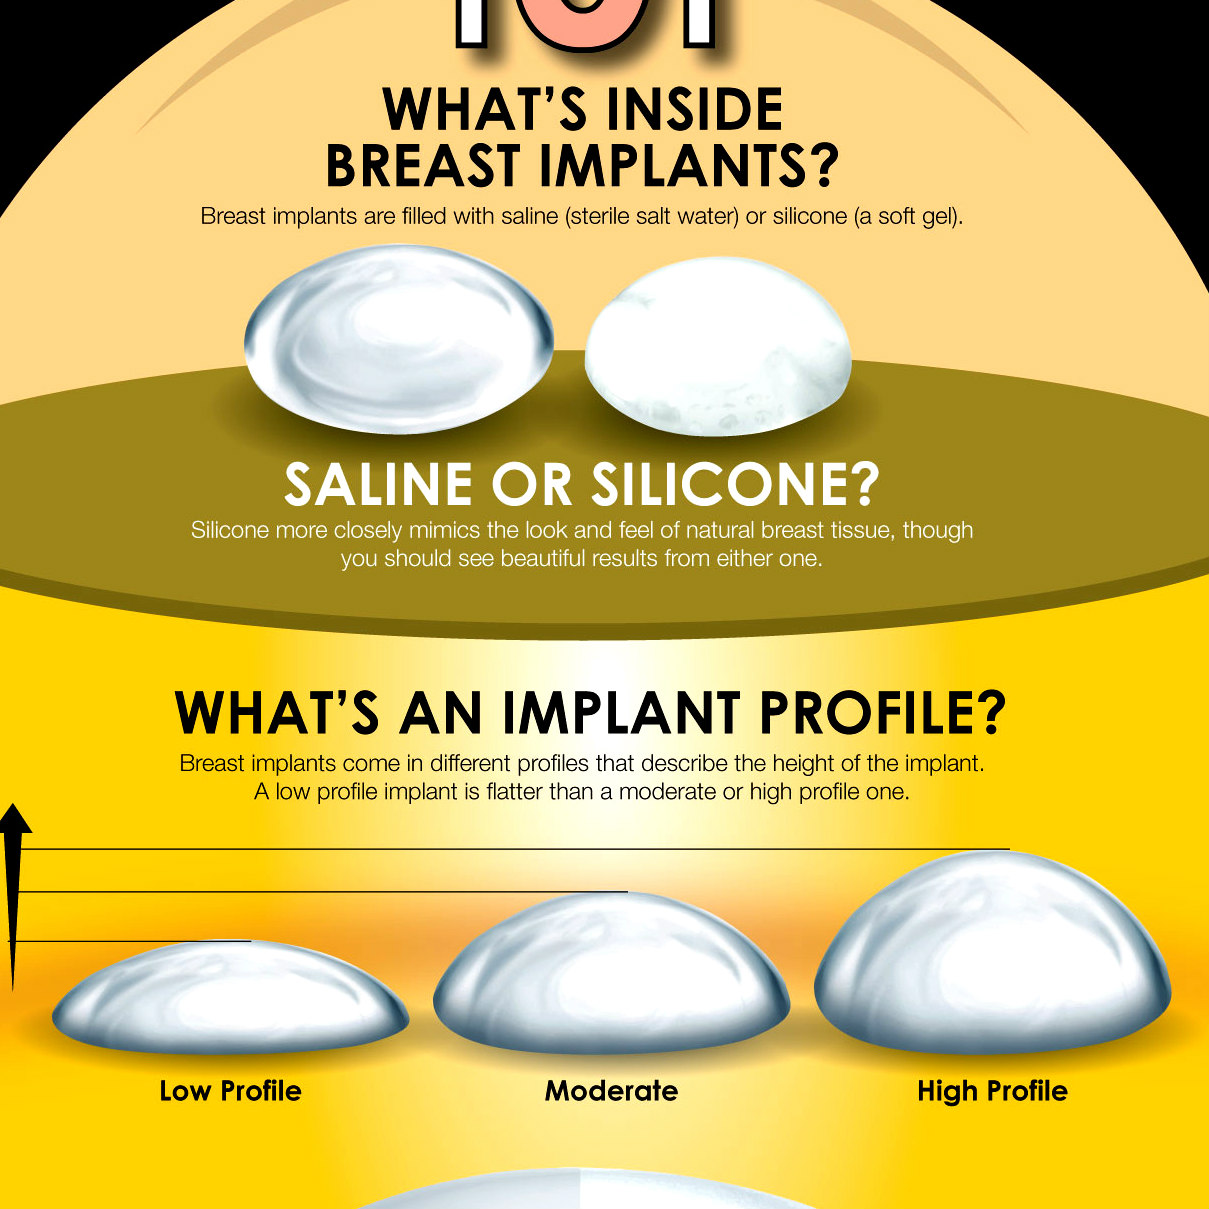 Breast Implants 101: What's Inside Breast Implants? [Infographic]